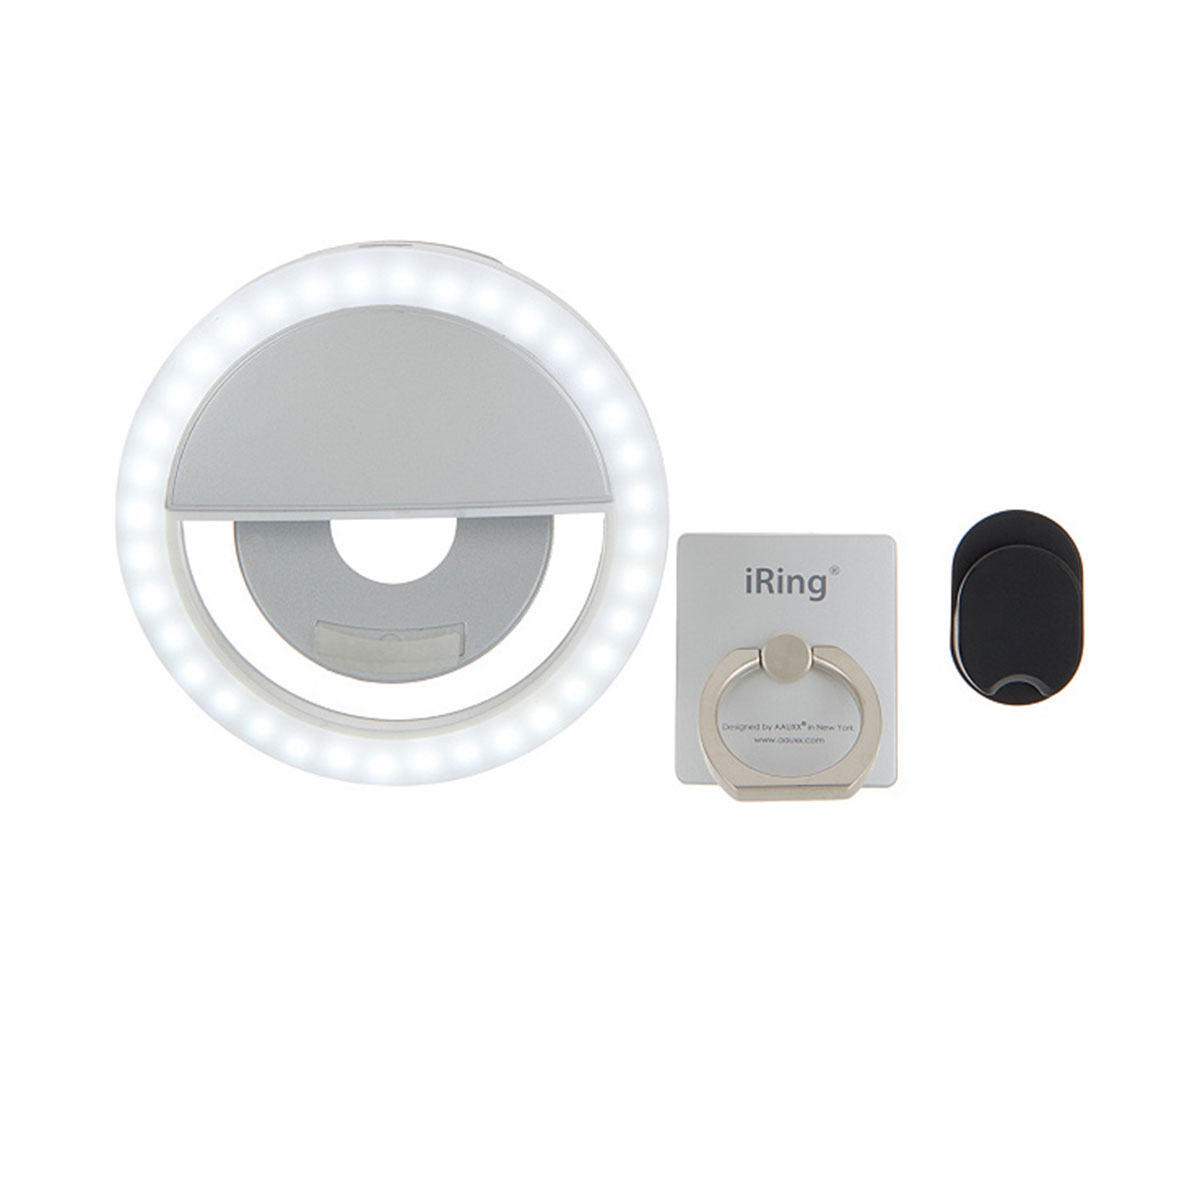 Picture Perfect Selfie Set w/ iRing Phone Stand & iSelfie Light